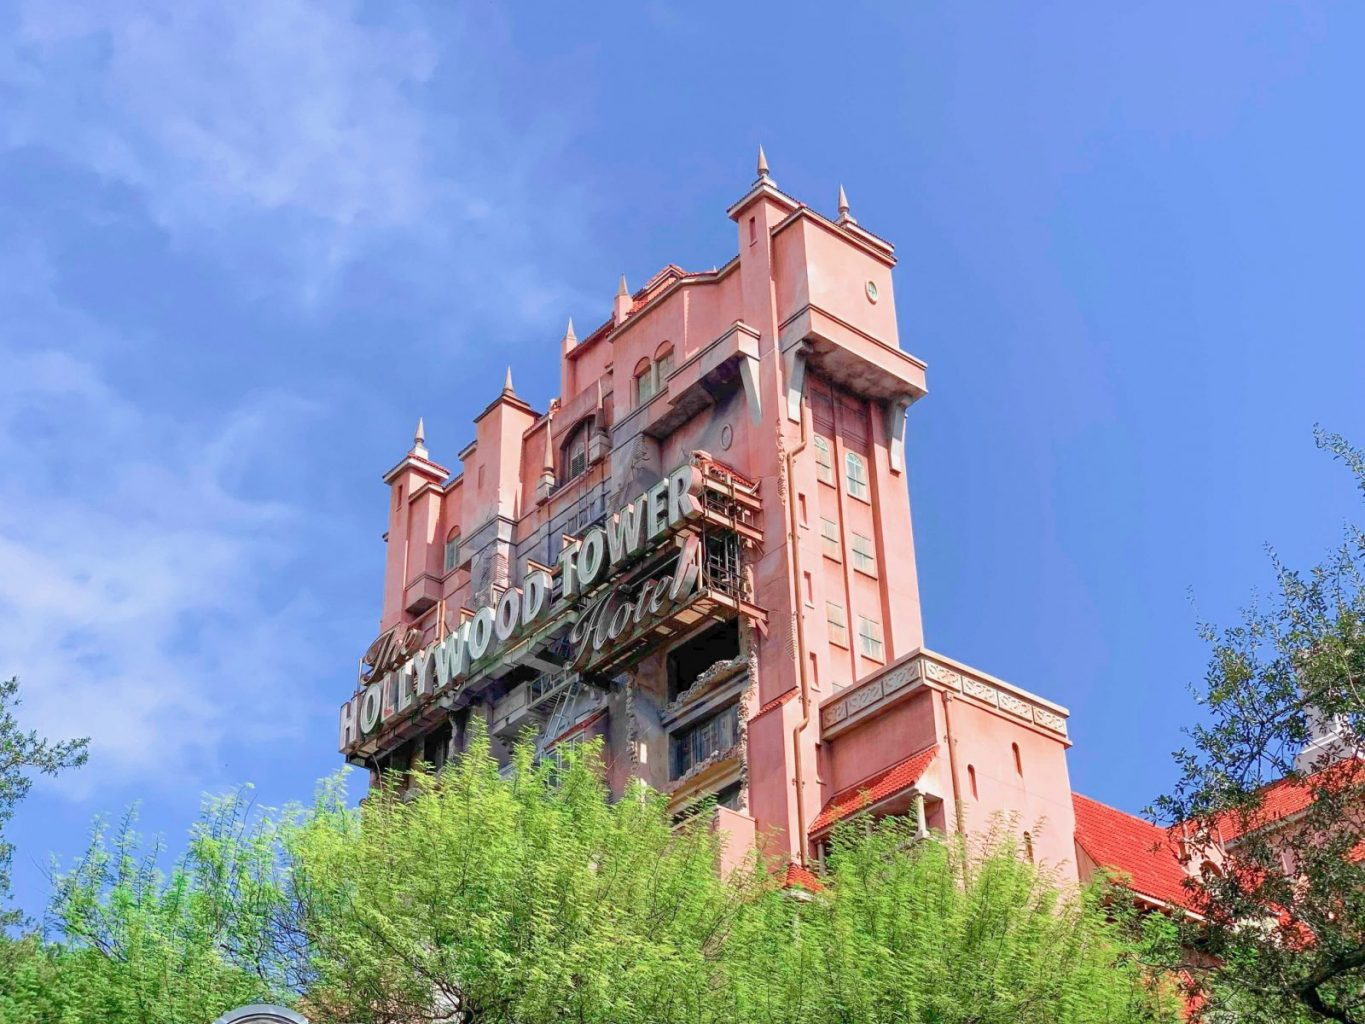 Tower Of Terror classic Hollywood Studios ride